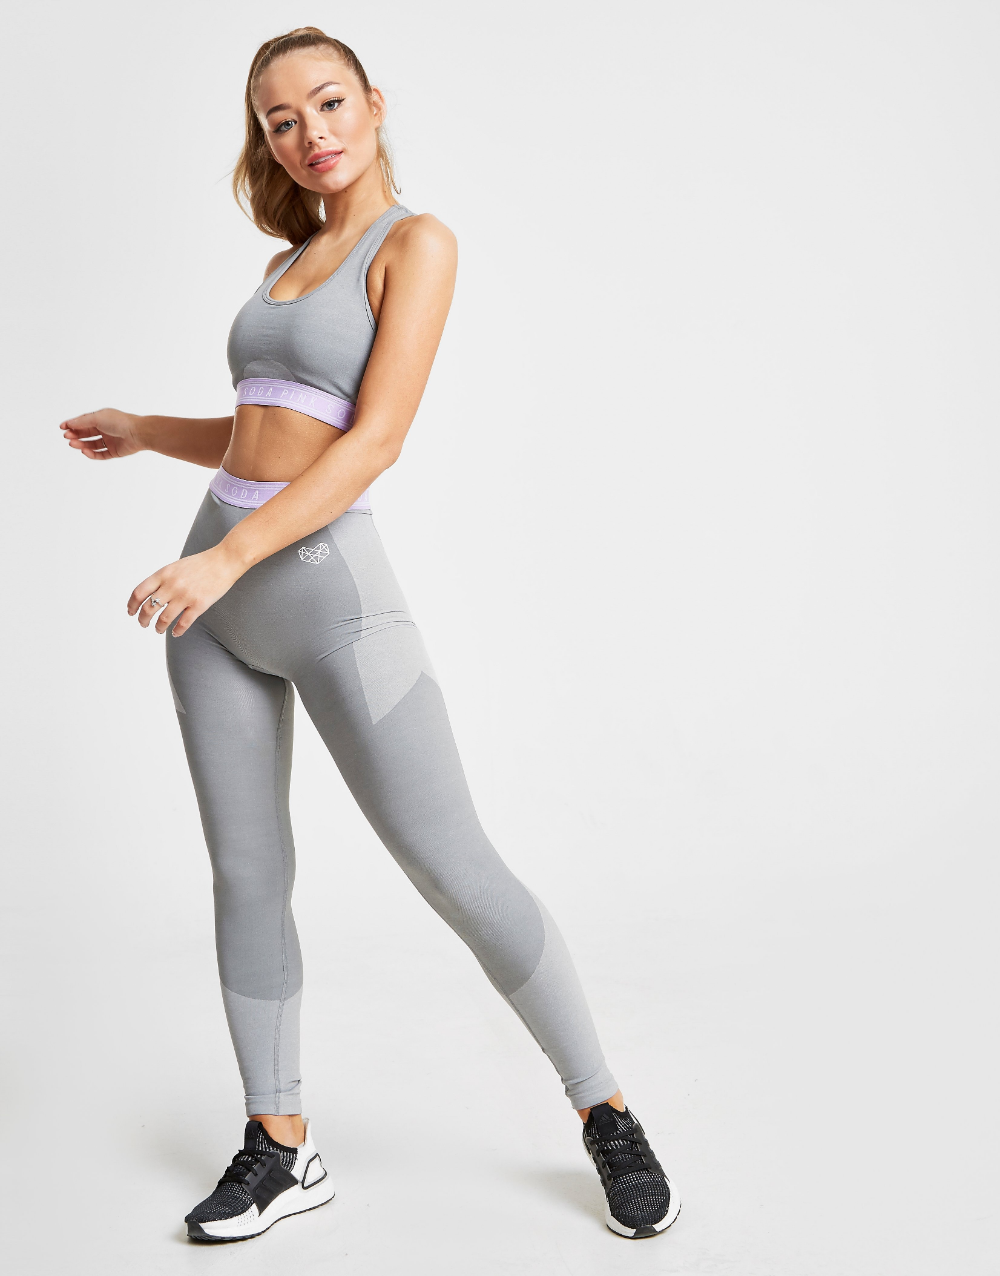 Pink Soda Sport Seamless online for Pink Soda